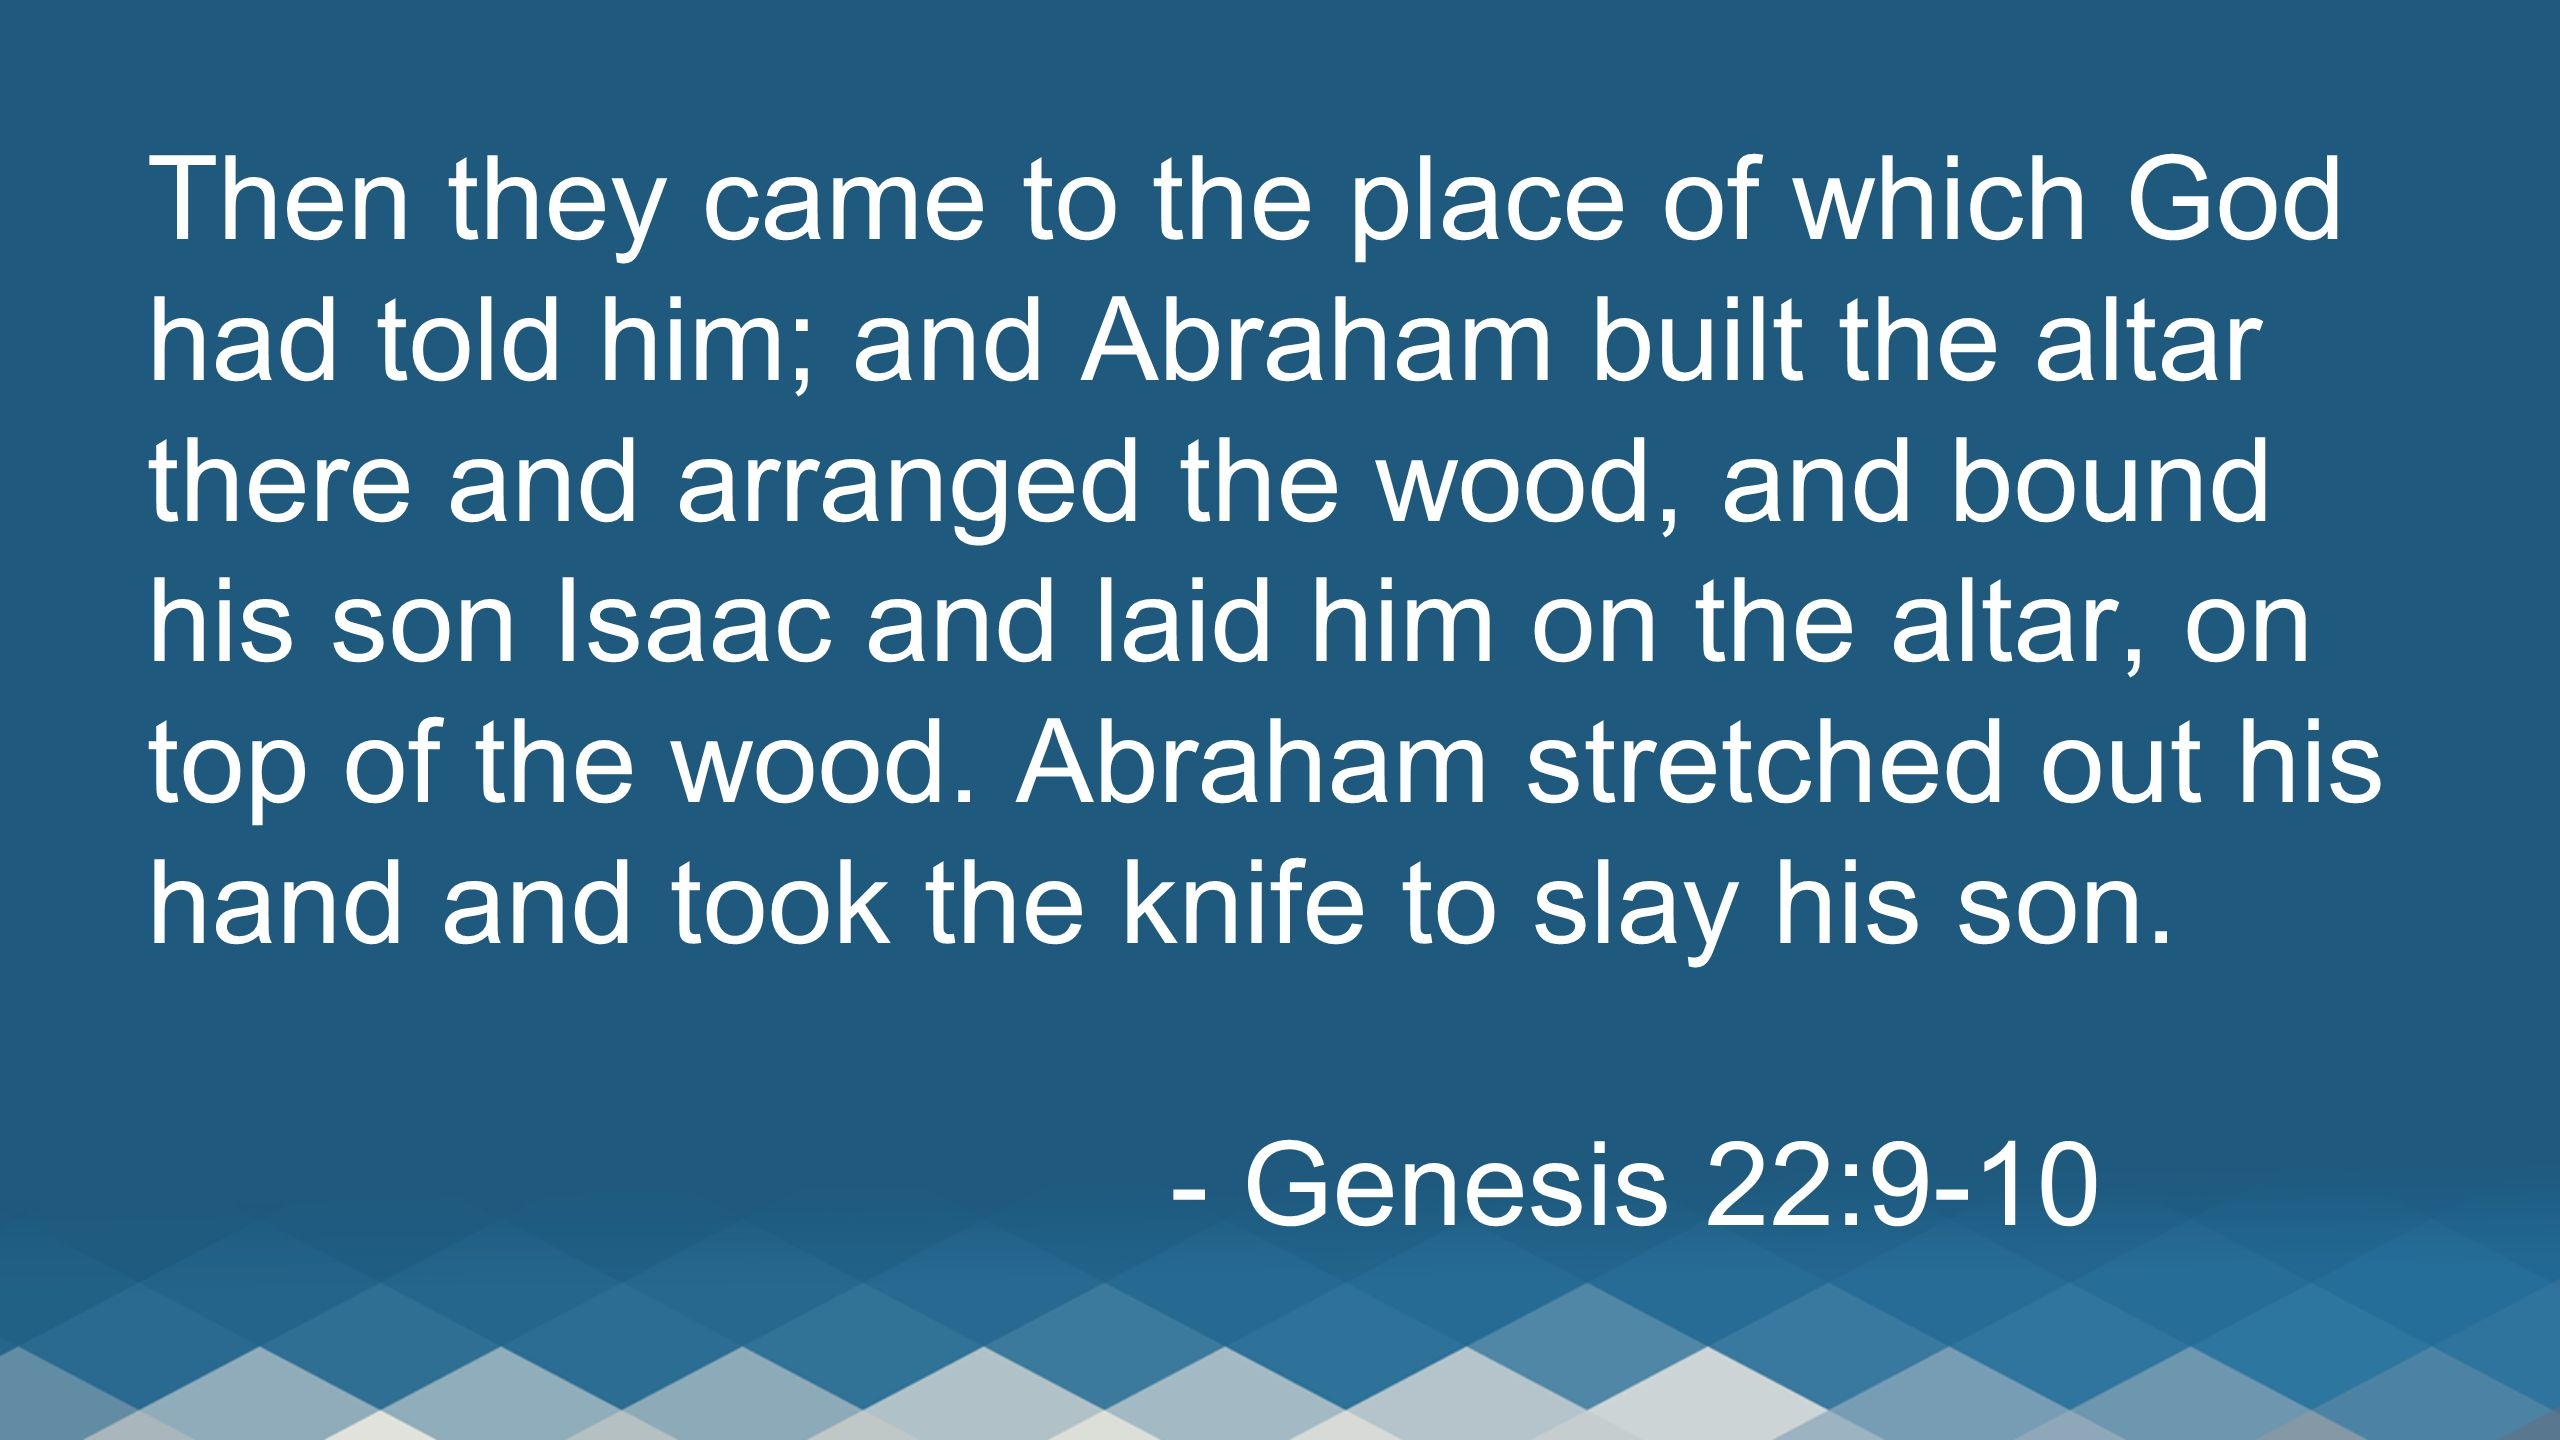 Then they came to the place of which God had told him; and Abraham built the altar there and arranged the wood, and bound his son Isaac and laid him on the altar, on top of the wood.